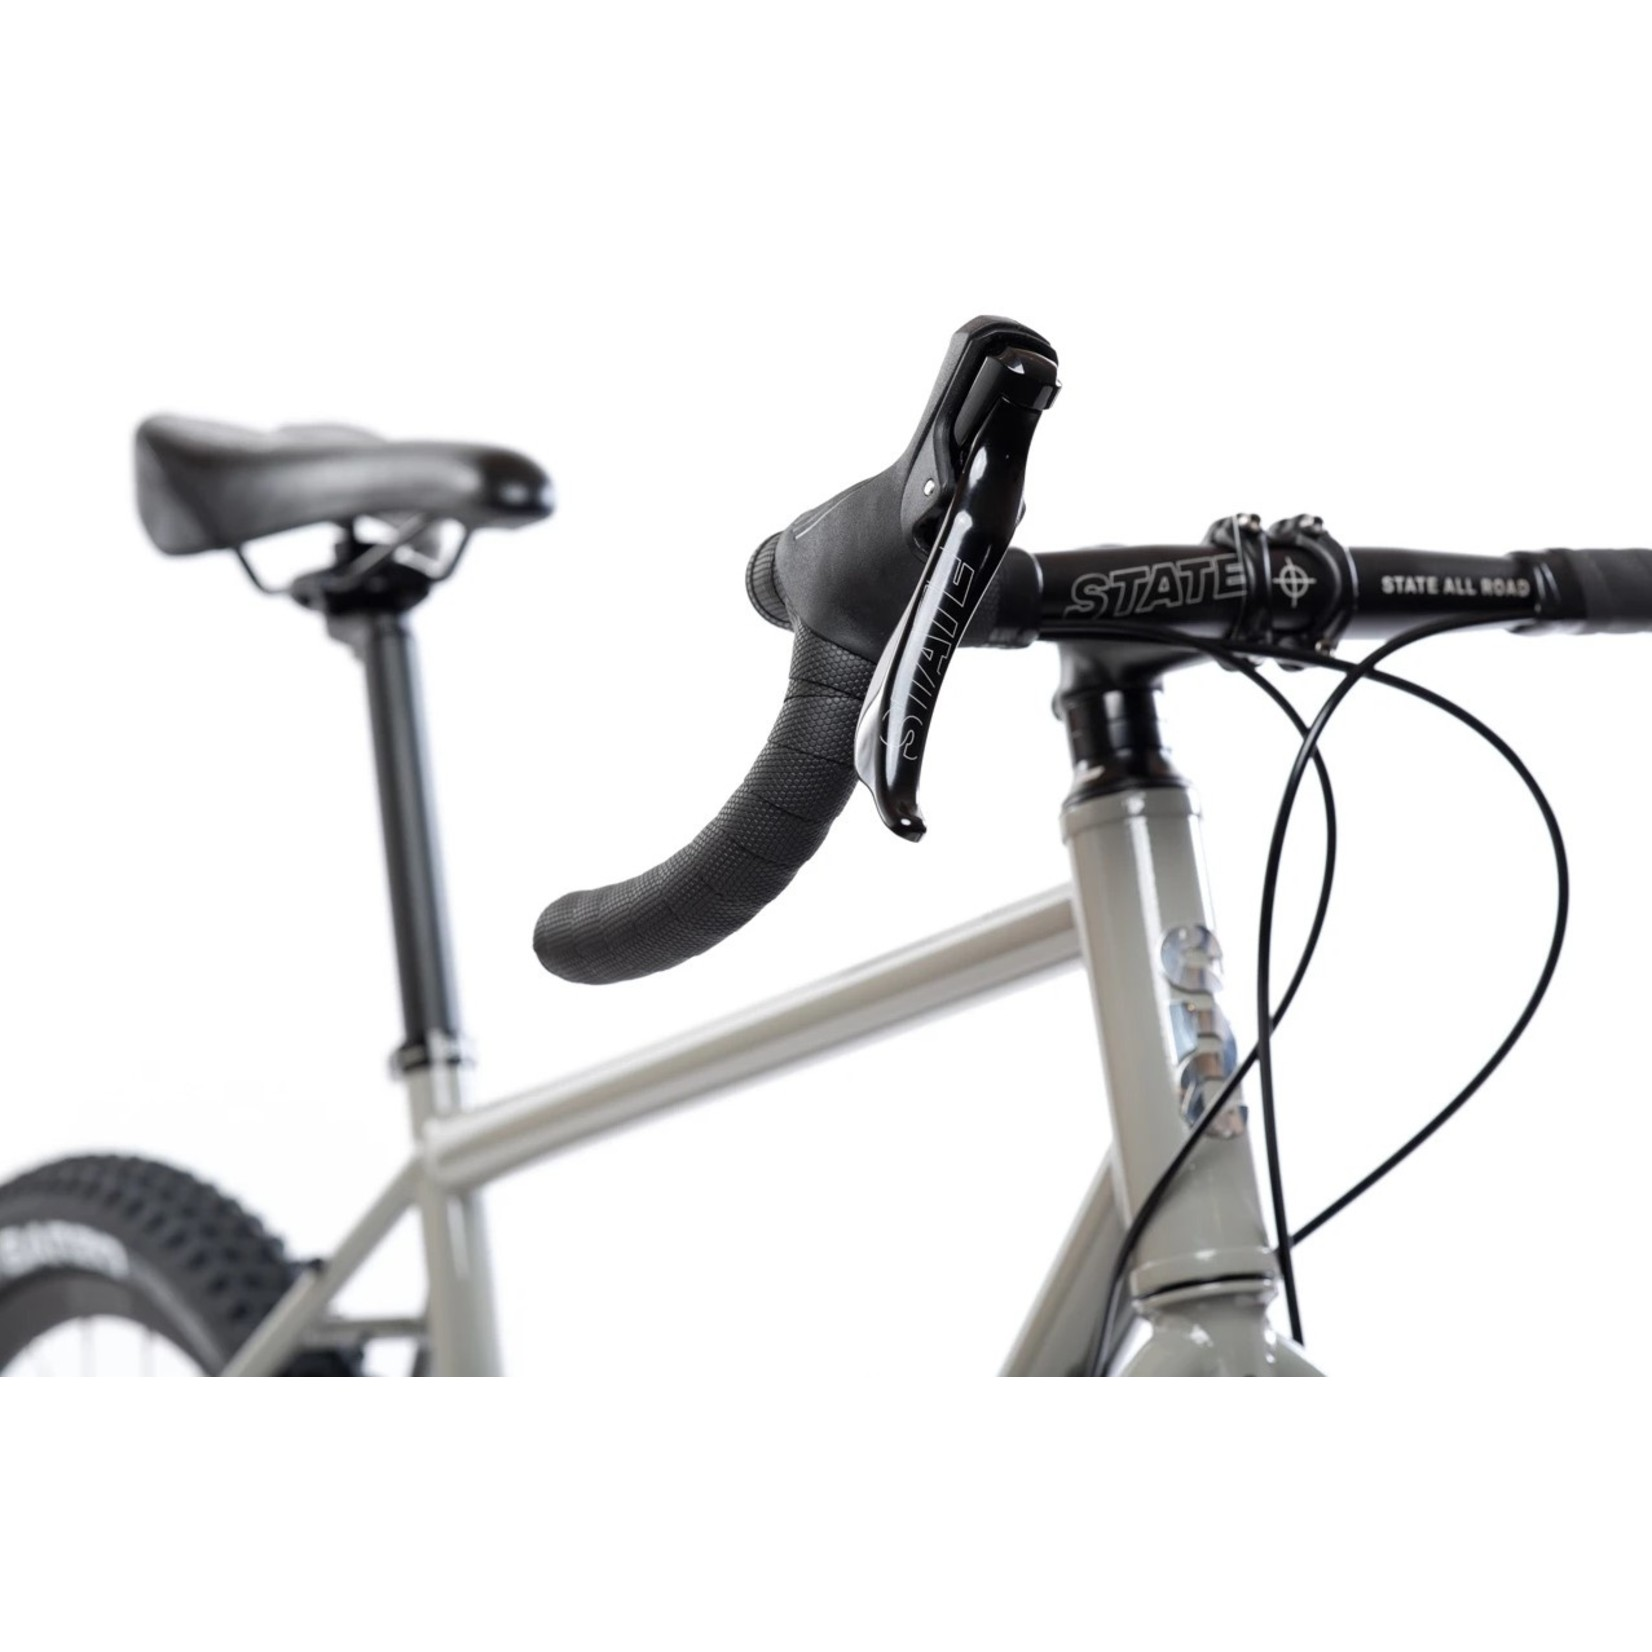 State Bicycle Co. 4130 All Road Pigeon Gray